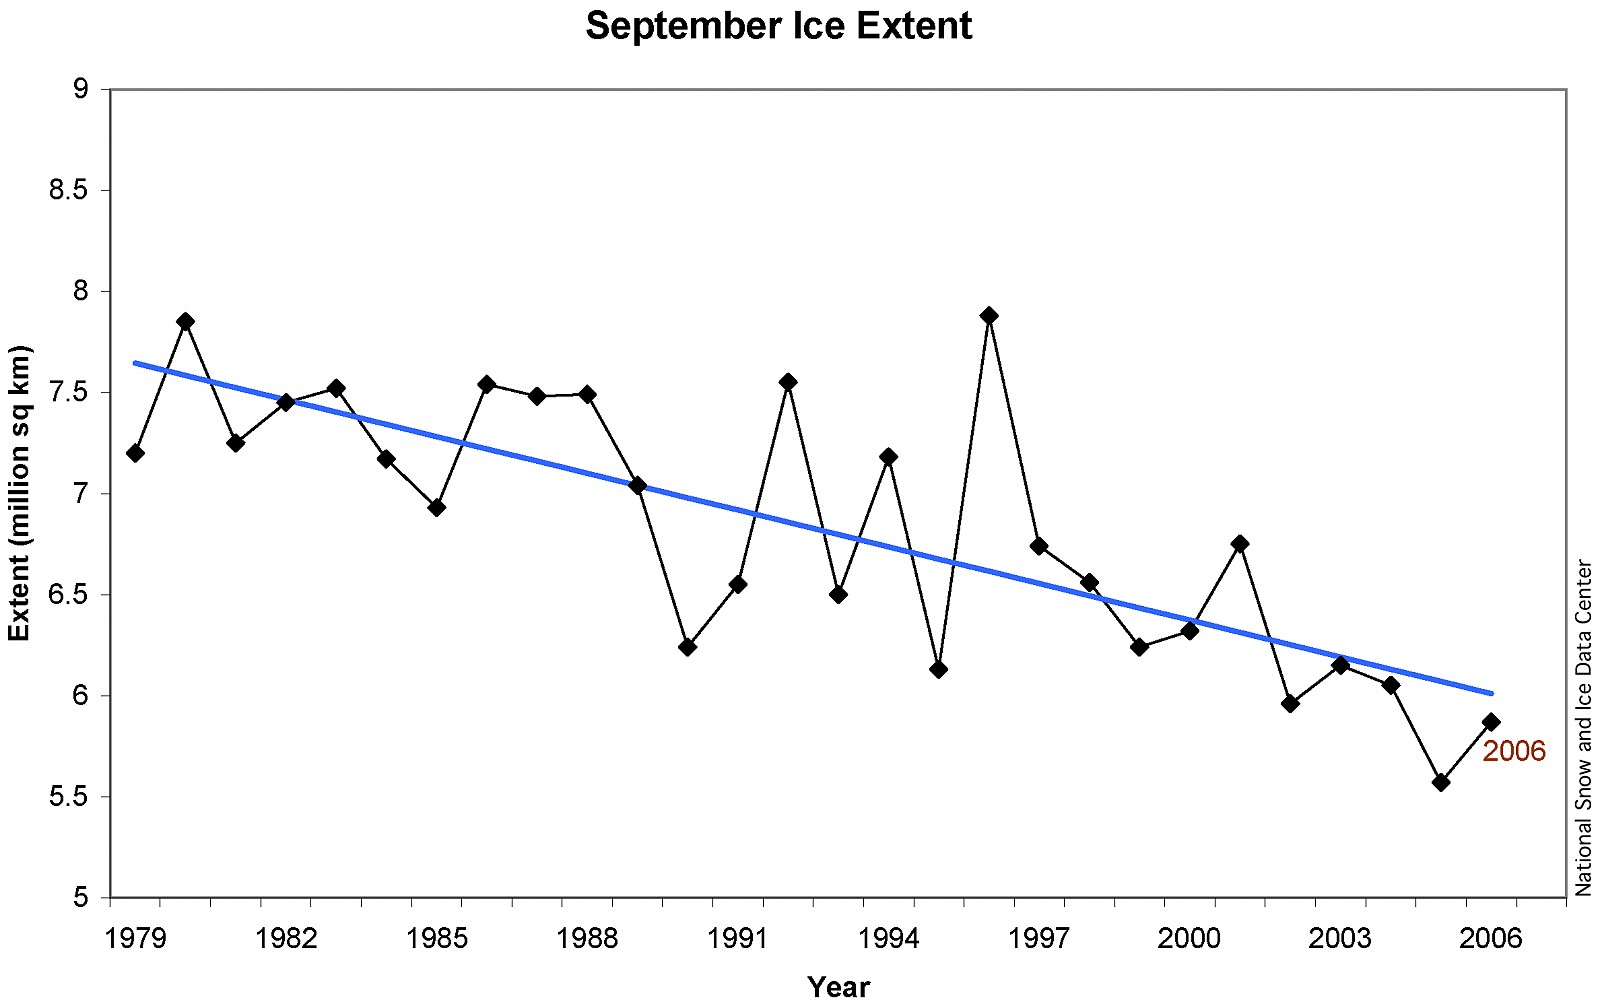 Click image for larger version  Name:ICE-SeptTrend.jpg Views:66 Size:122.6 KB ID:4779